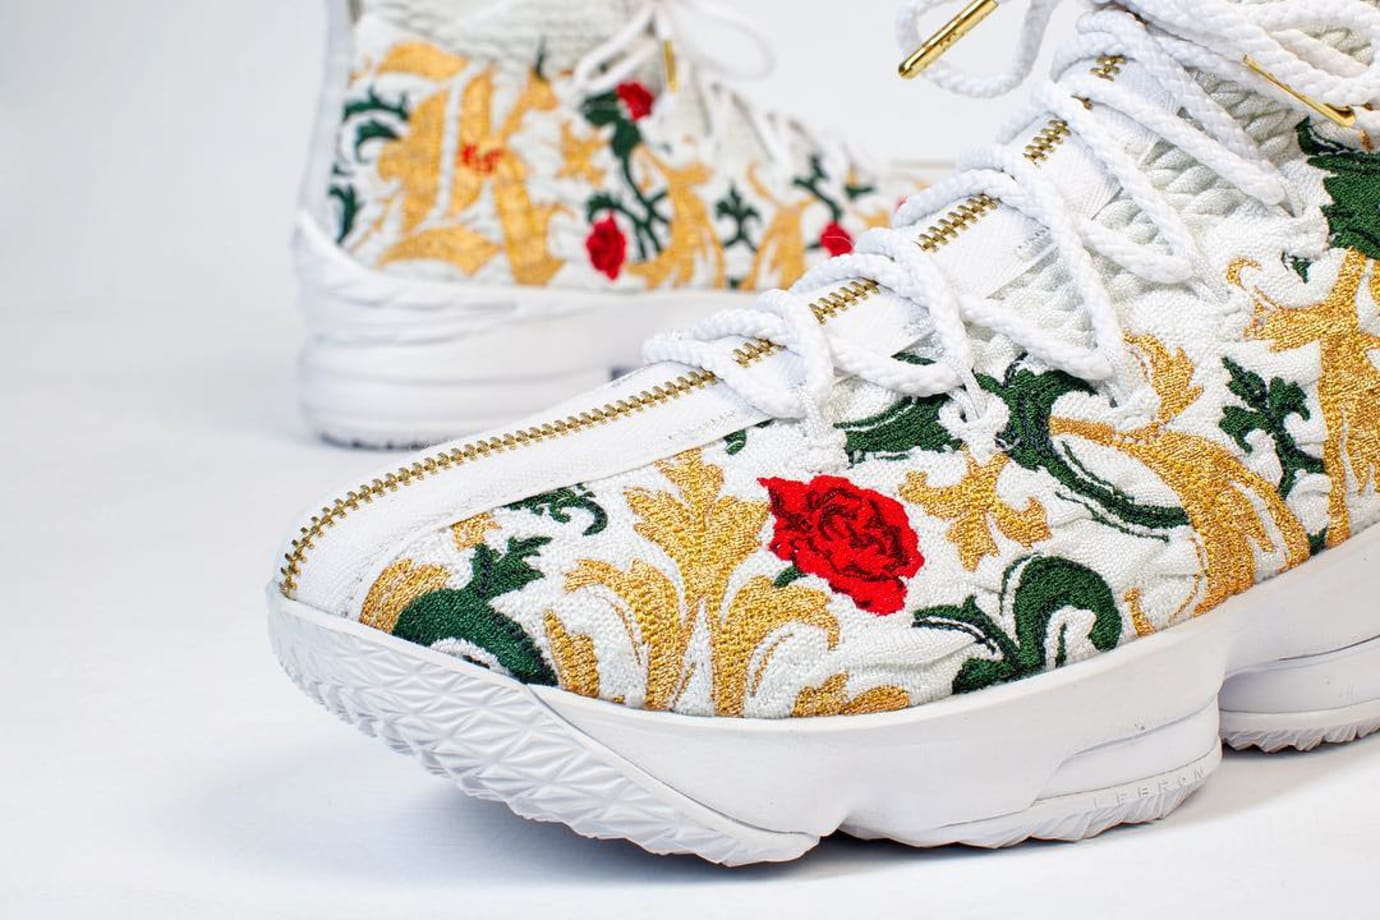 f641e5b201c Nike LeBron 15 Zip Floral Colorway